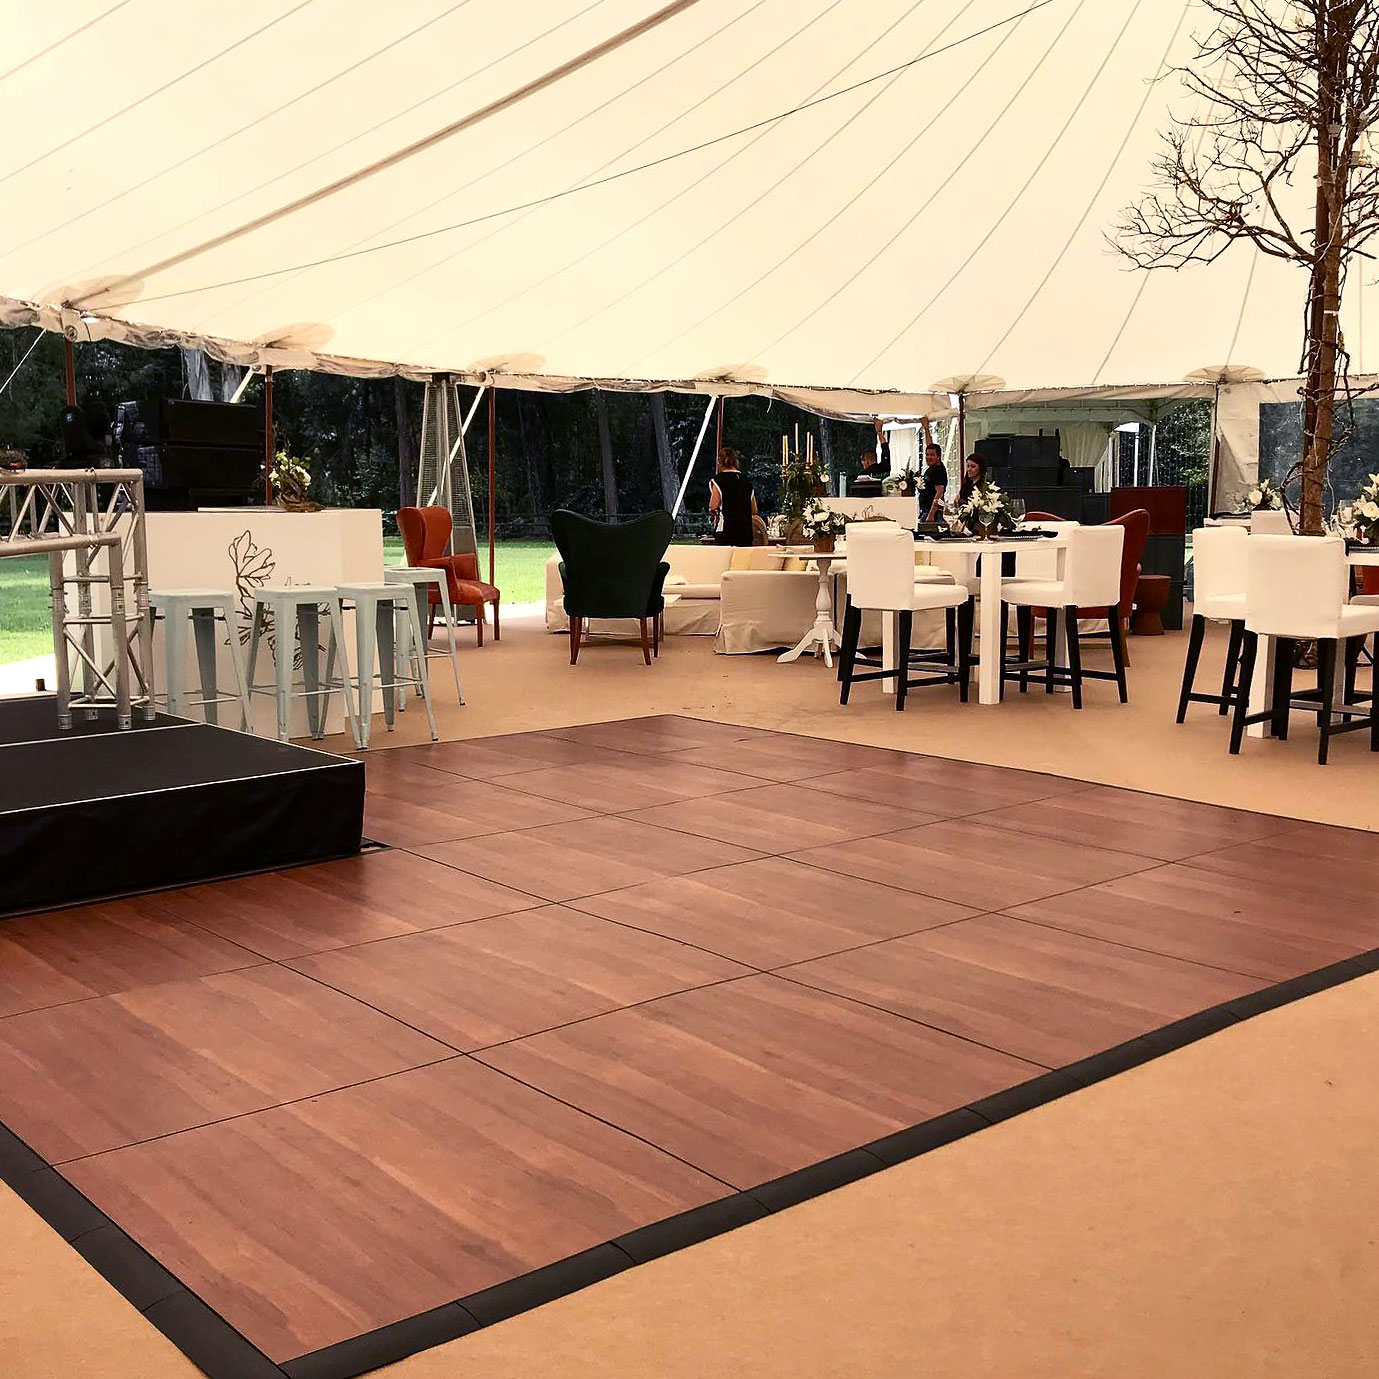 Dark Maple Plus dance floor with edges at a tent event